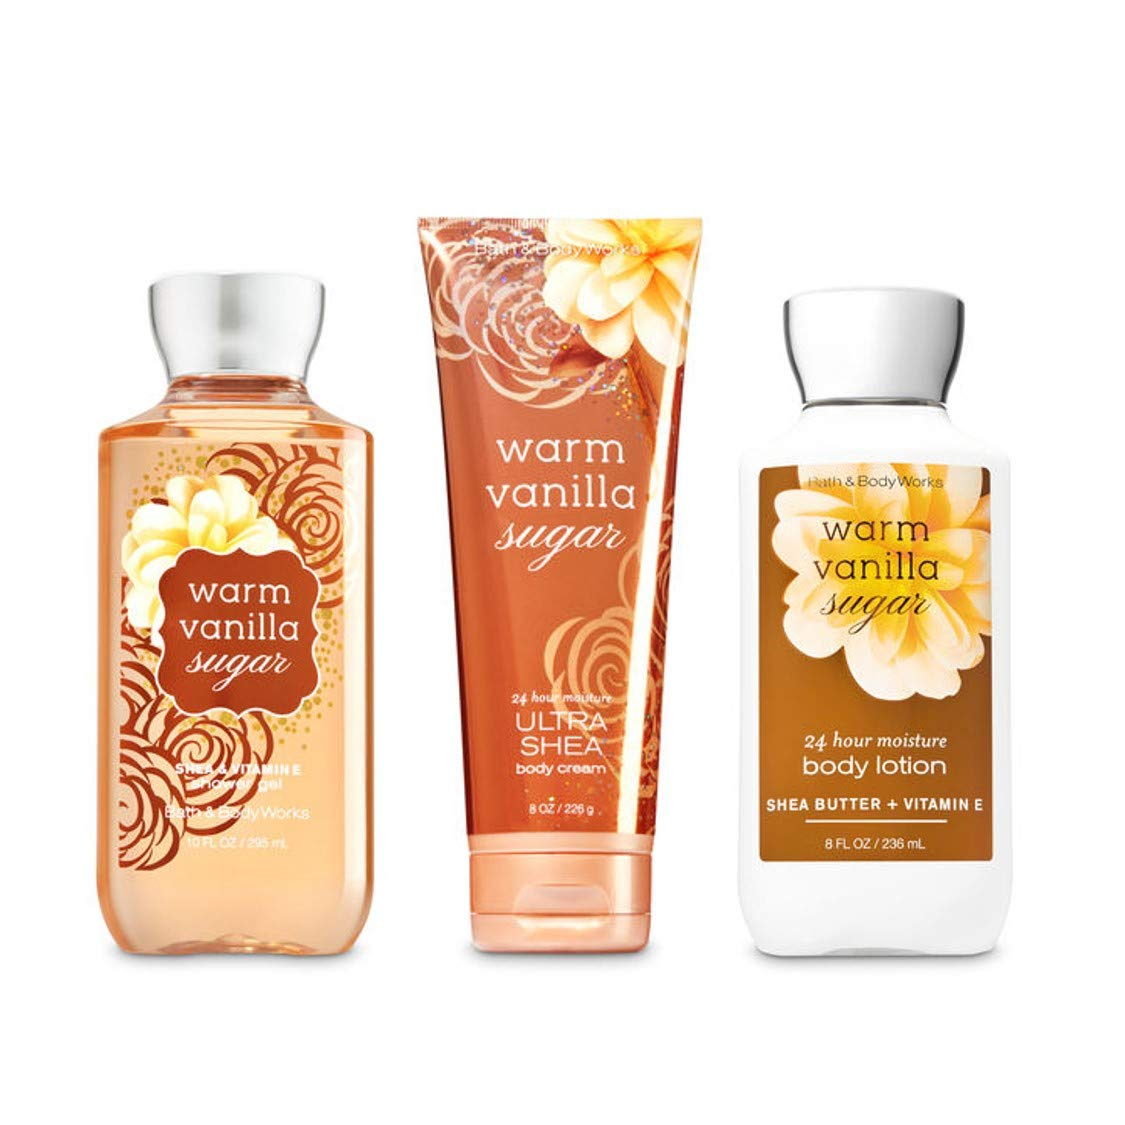 Bath & Body Works Warm Vanilla Sugar Body Set | Shower Gel, Body Lotion & Body Cream by Bath & Body Works